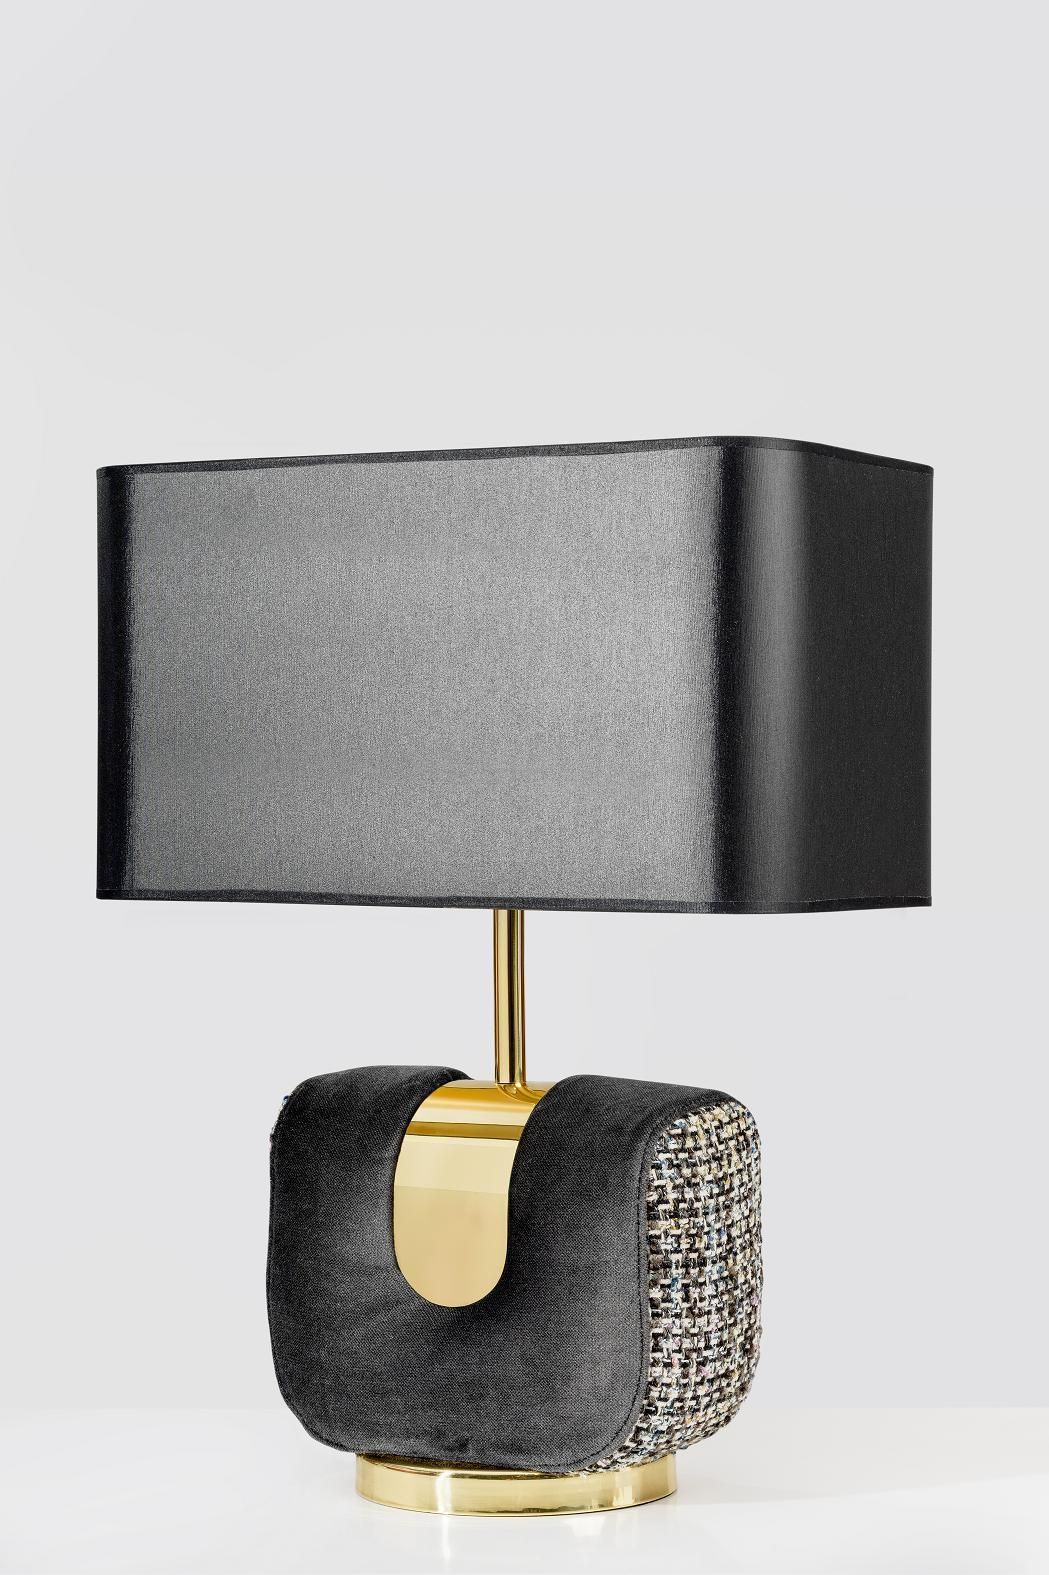 Is This Table Lamp The One You Have Been Looking For Check Out Ideas Here Www Lightingstores Eu Visit Bedside Table Lamps Table Lamp Stylish Table Lamps